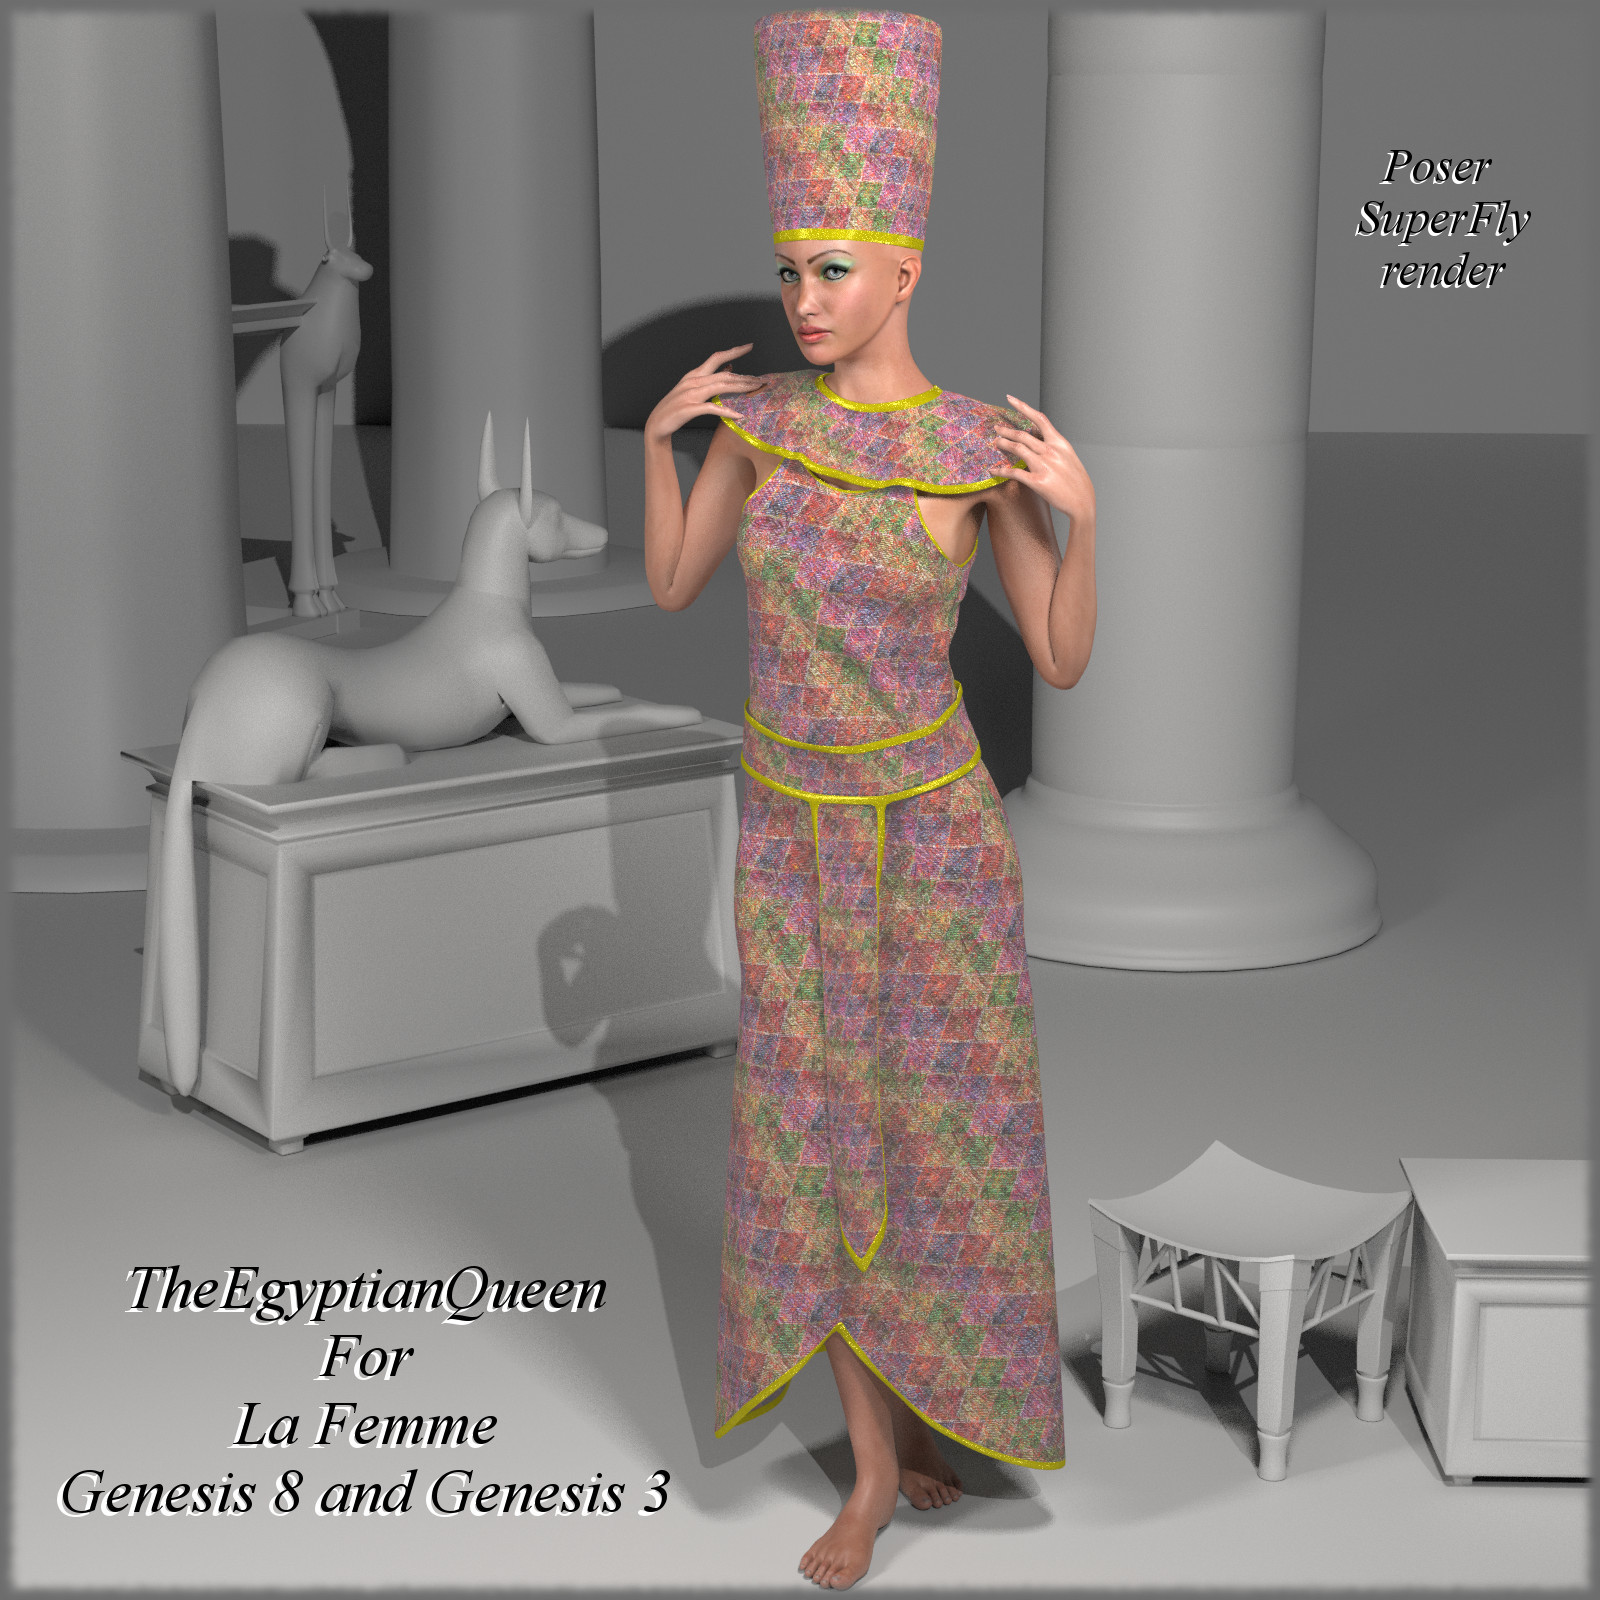 TheEgyptianQueen for La Femme, G8 and G3